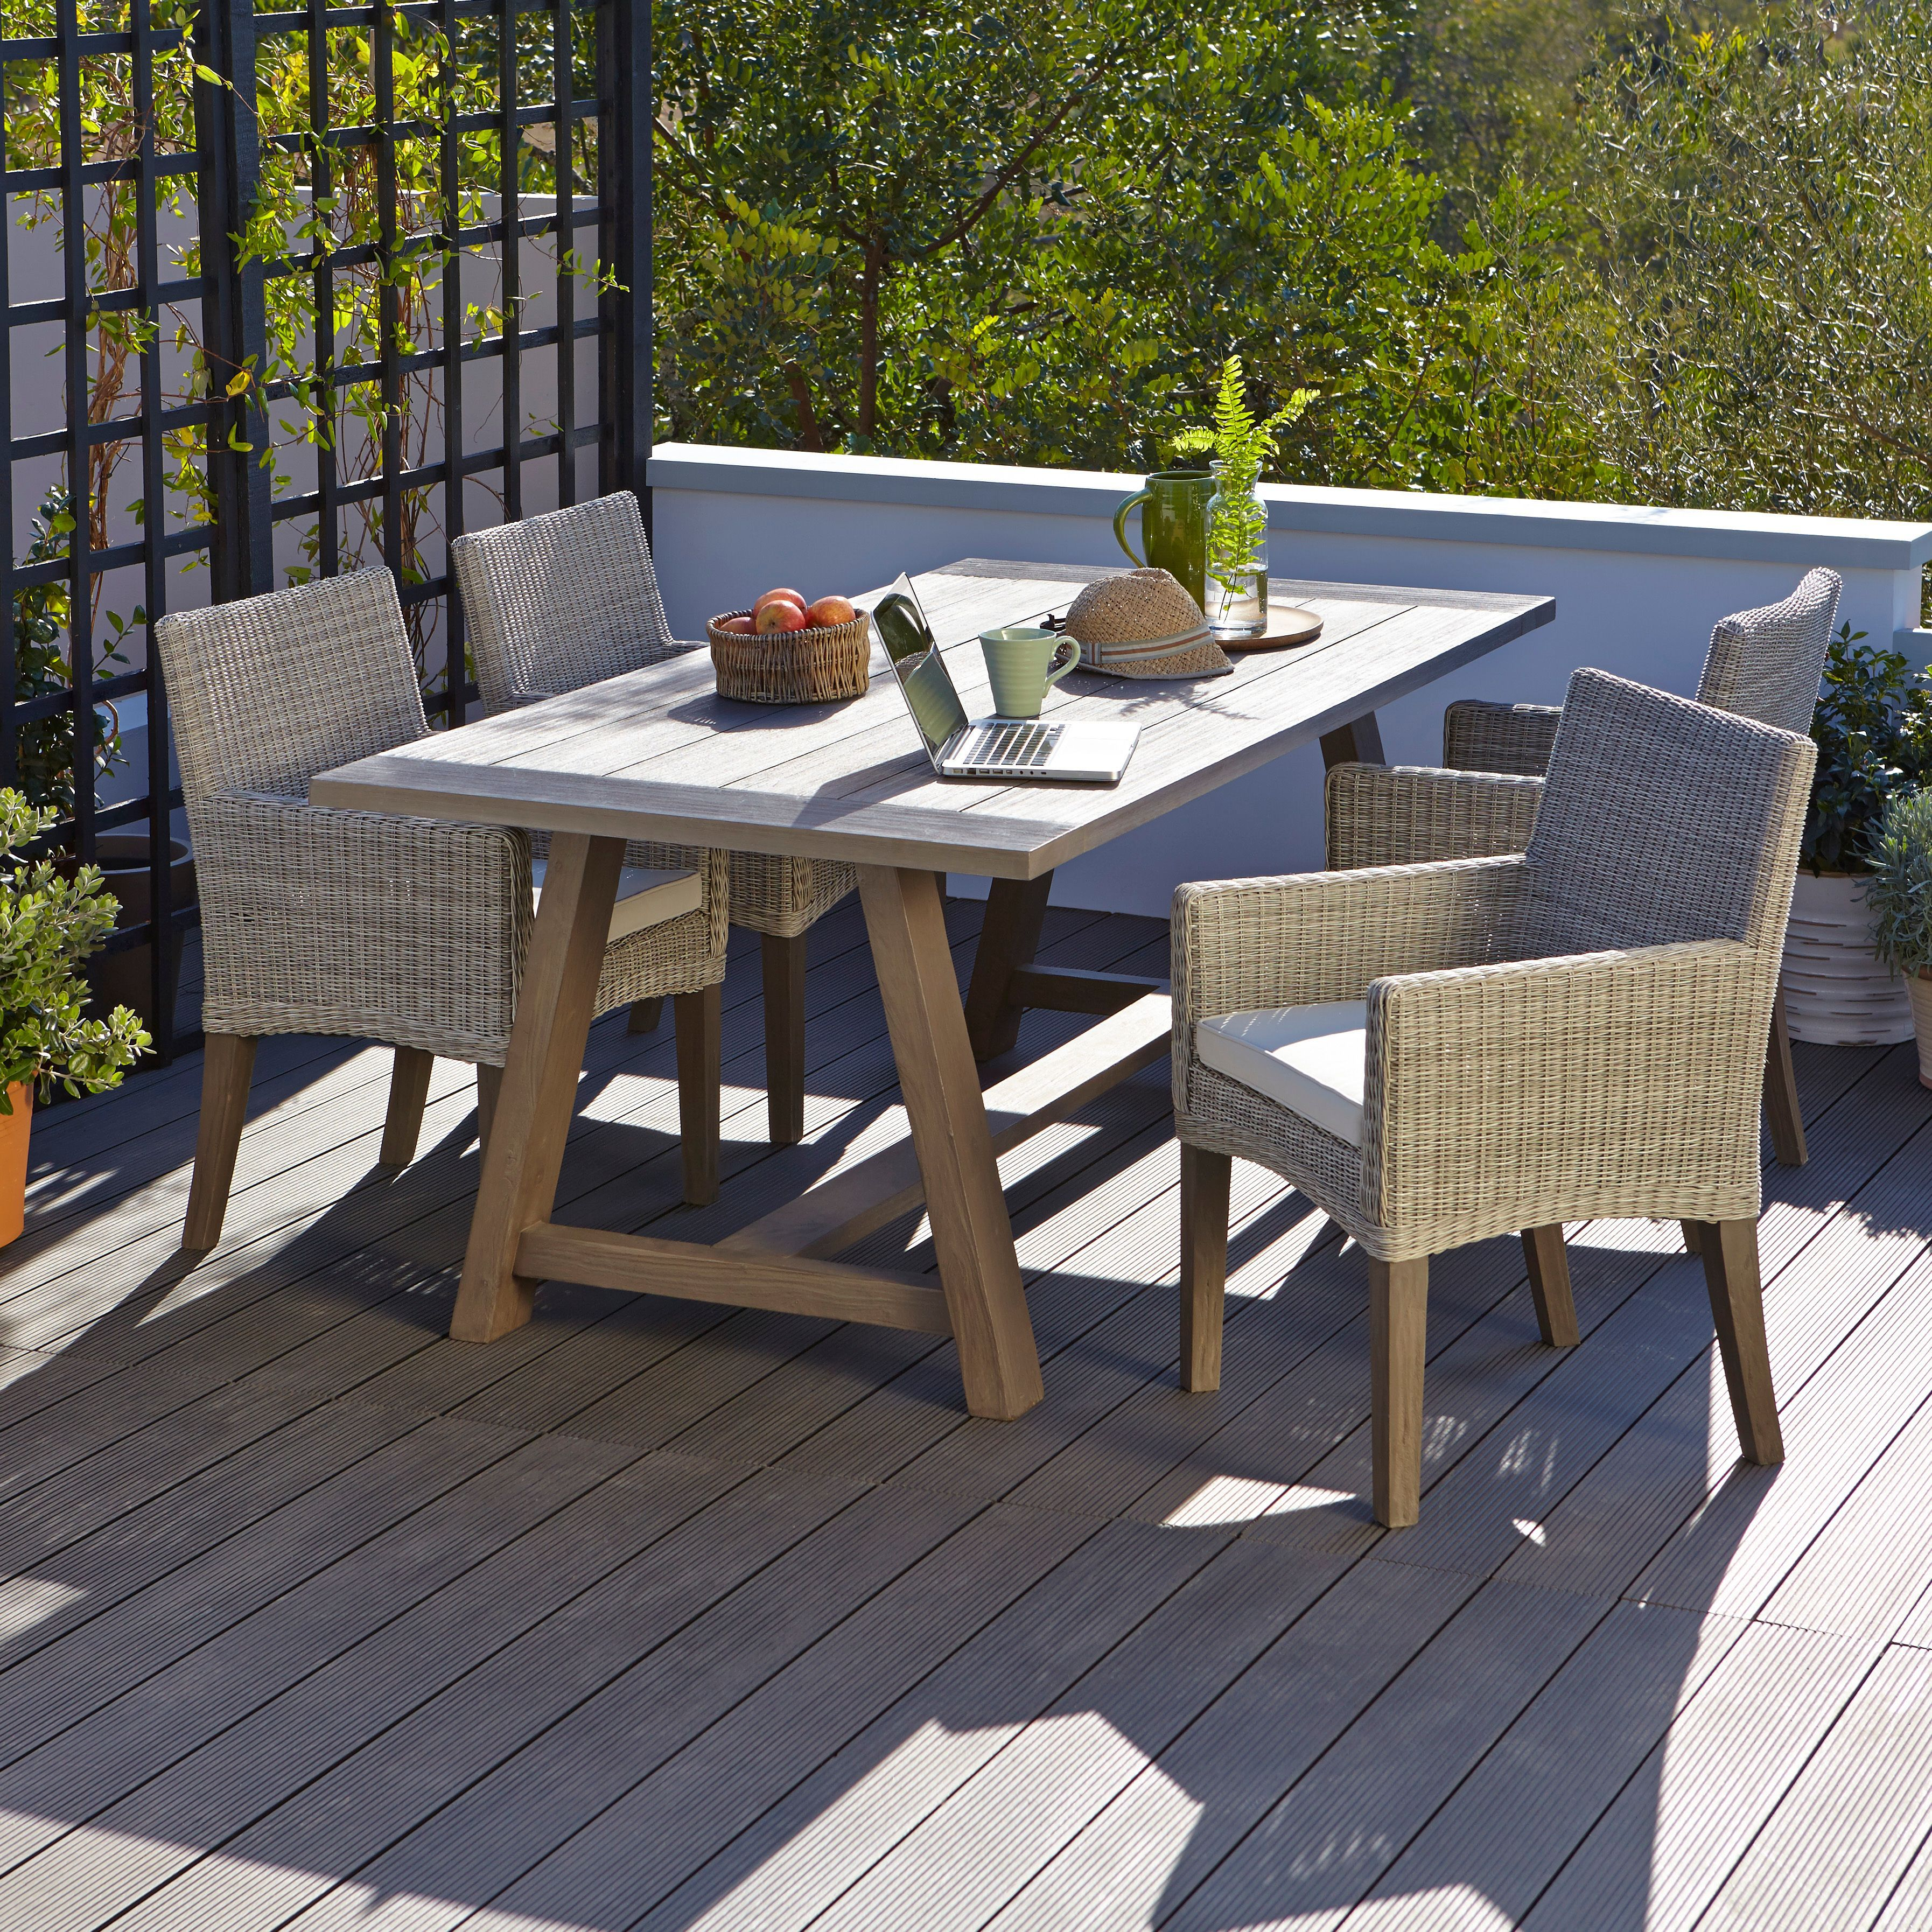 Rattan Garden Furniture Tesco 100+ [ tesco patio table and chairs ] | patio rattan patio set